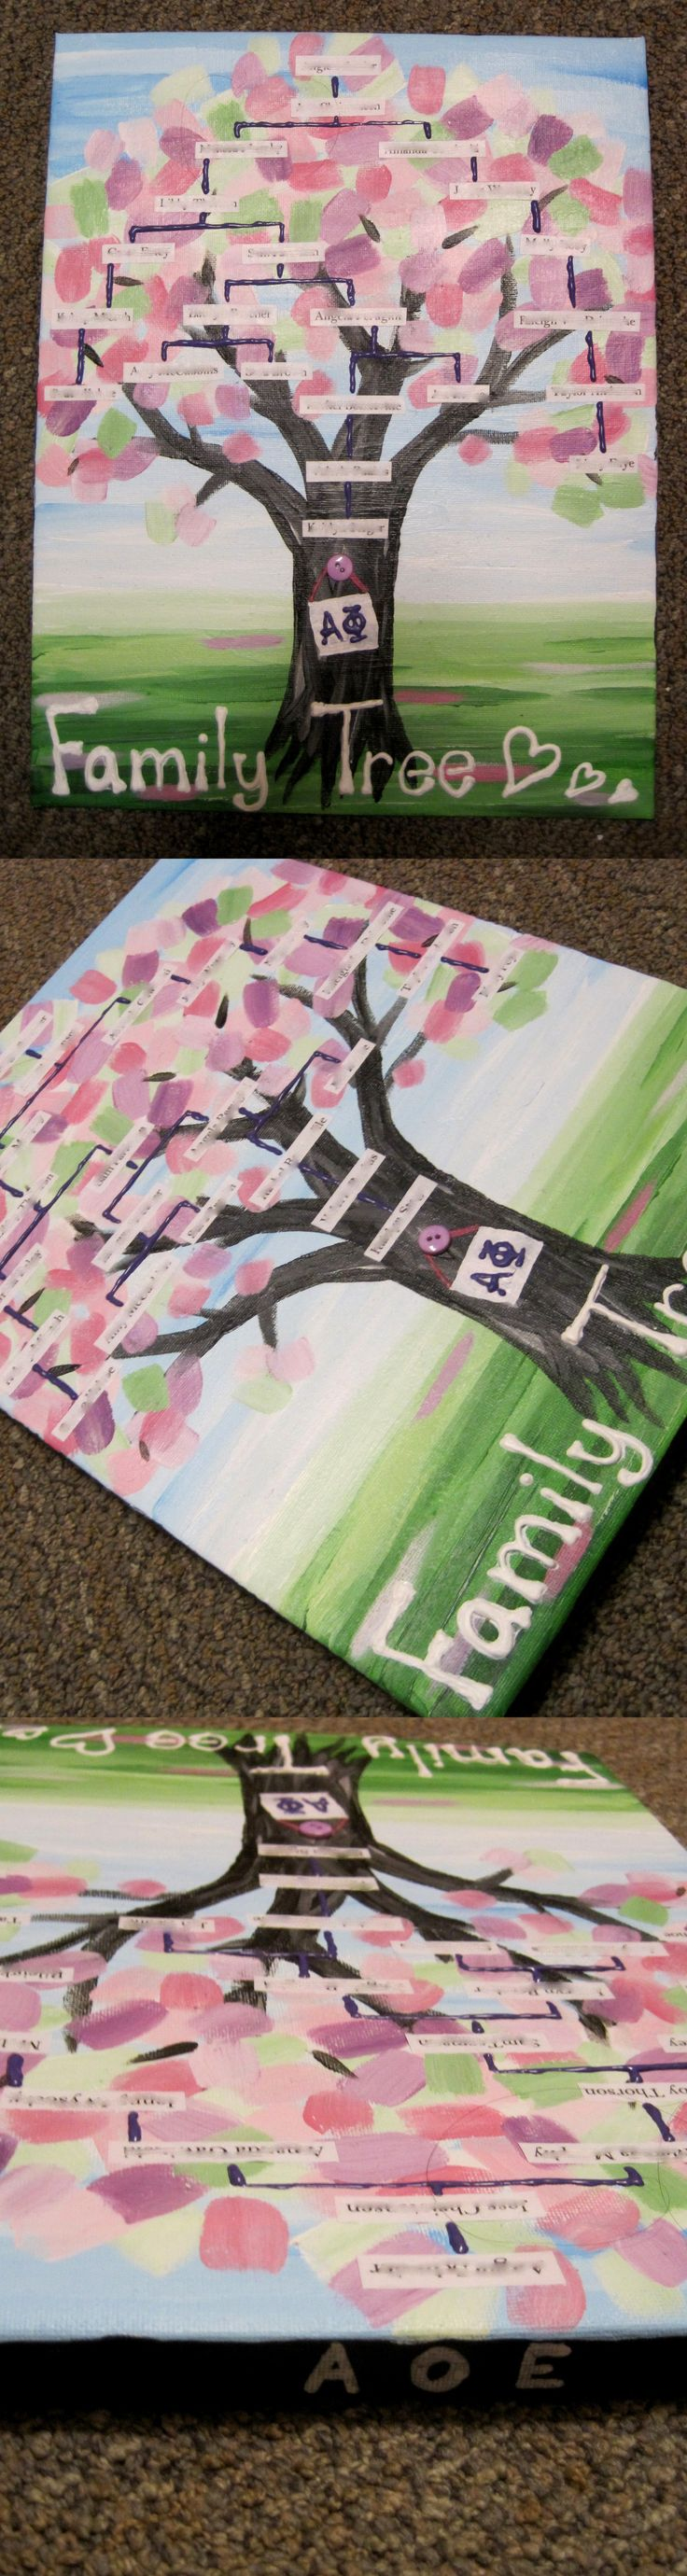 painted family tree! super cute idea! #sorority #crafts  #familytree